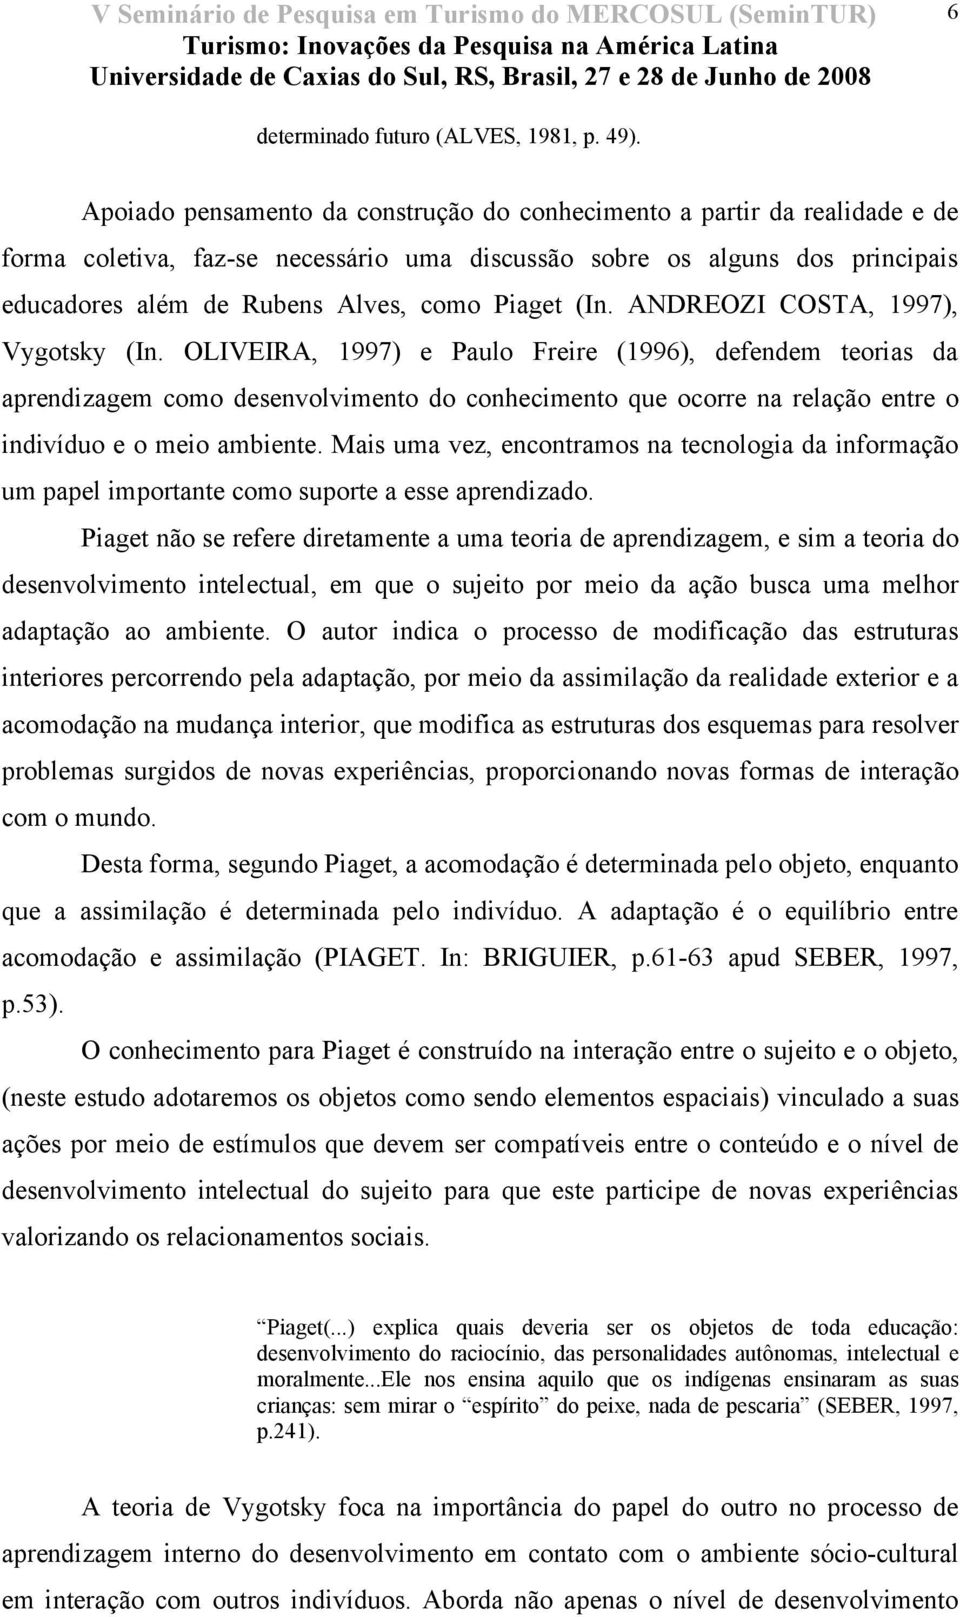 (In. ANDREOZI COSTA, 1997), Vygotsky (In.